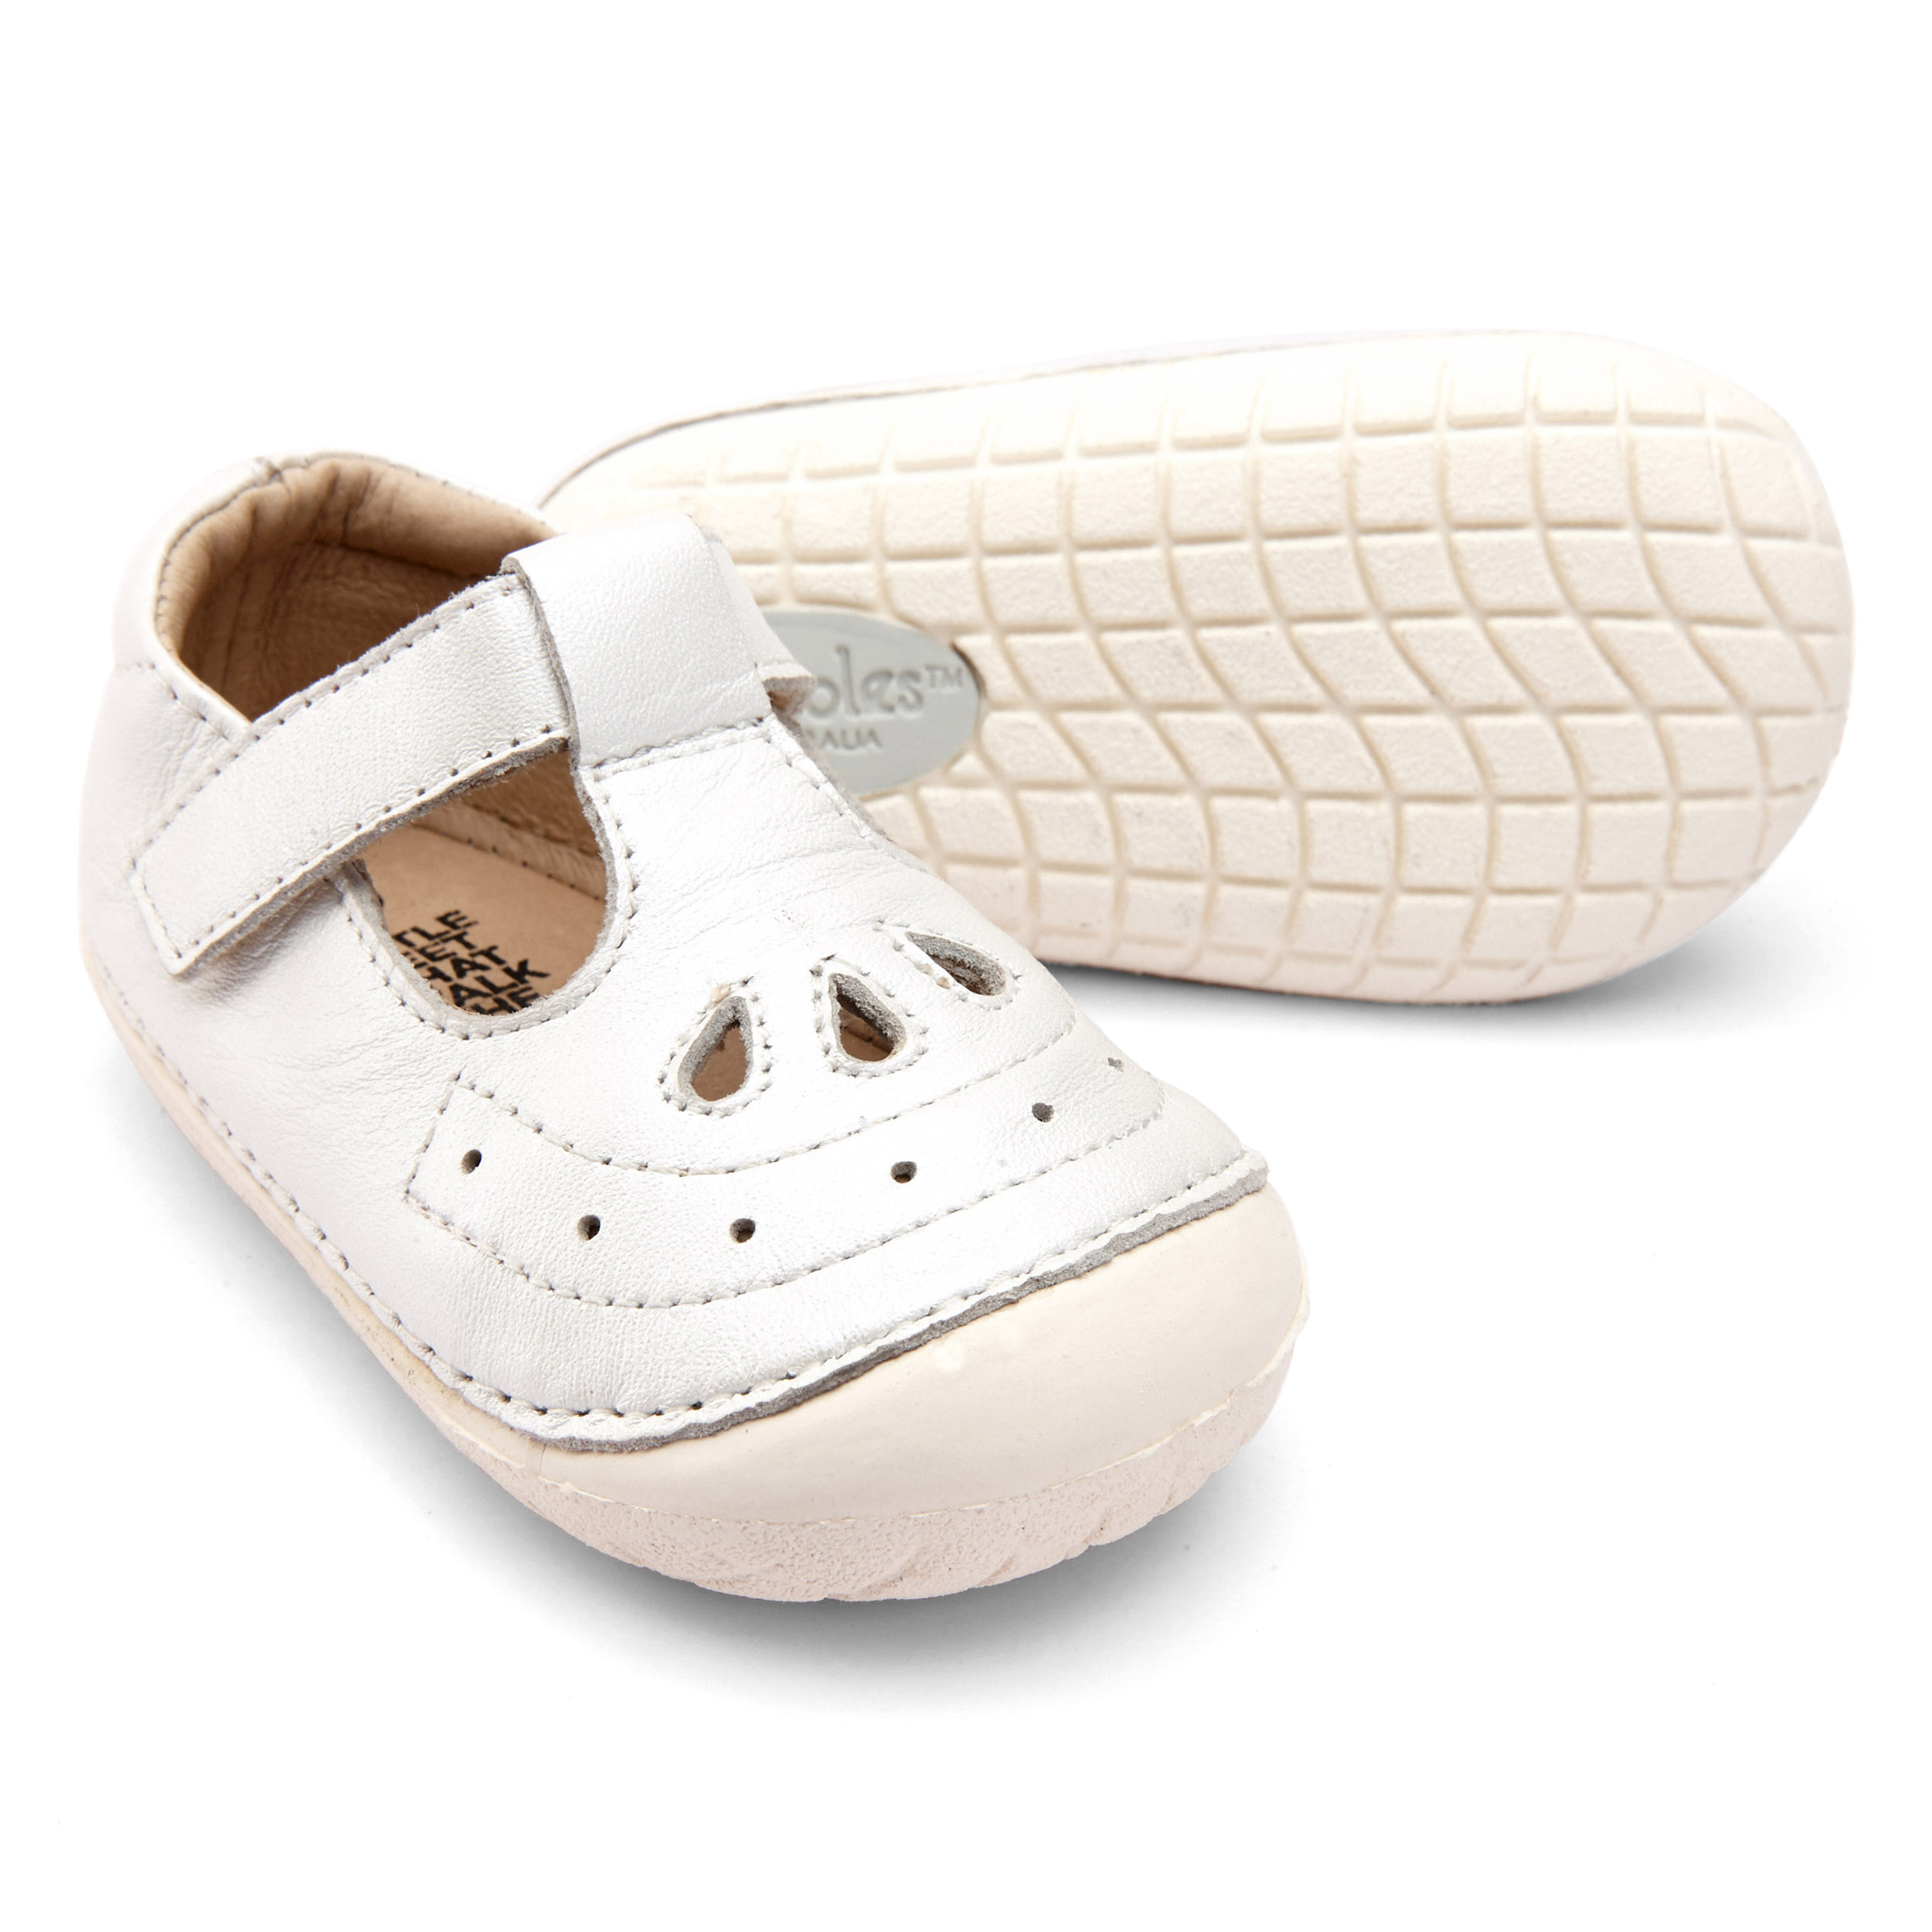 OLD SOLES GIRLS Royal Pave White T-Bar 4022